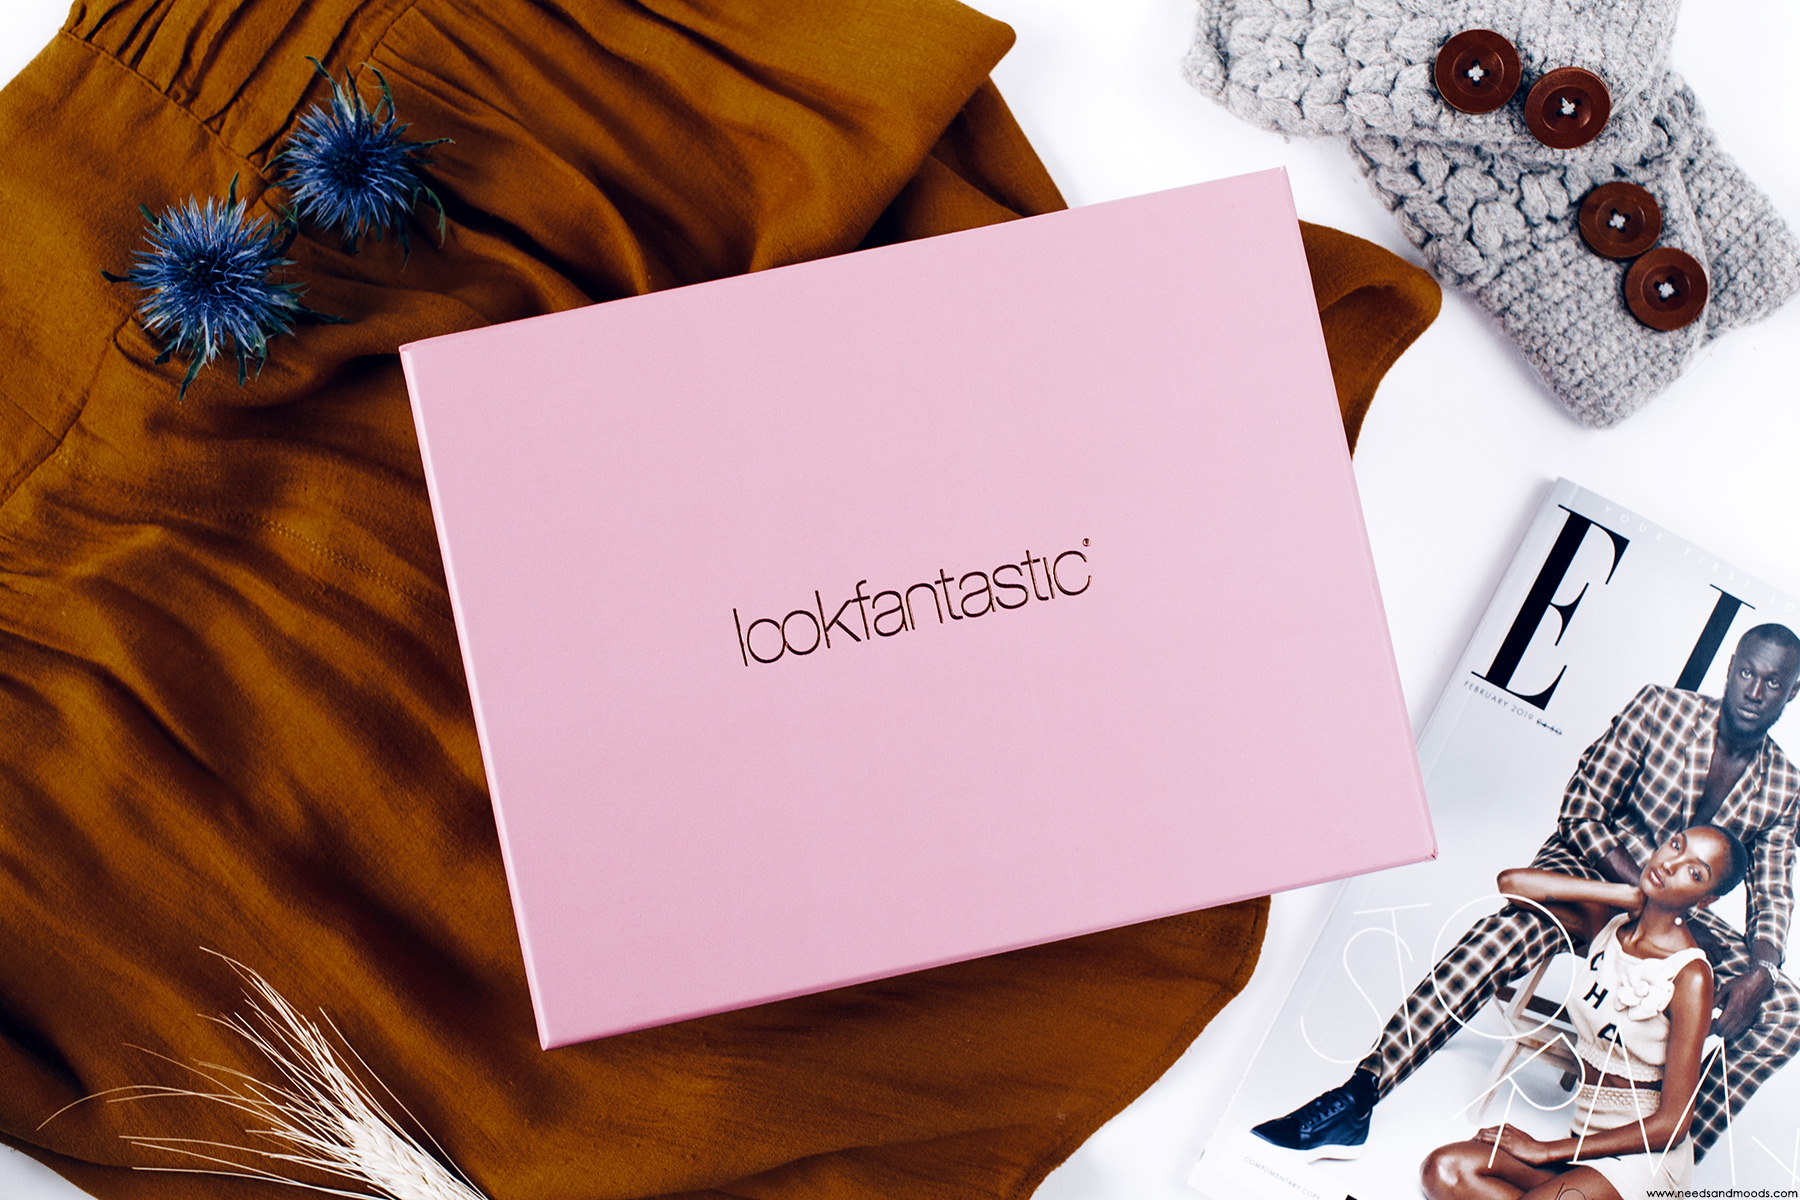 lookfantastic beauty box fevrier 2019